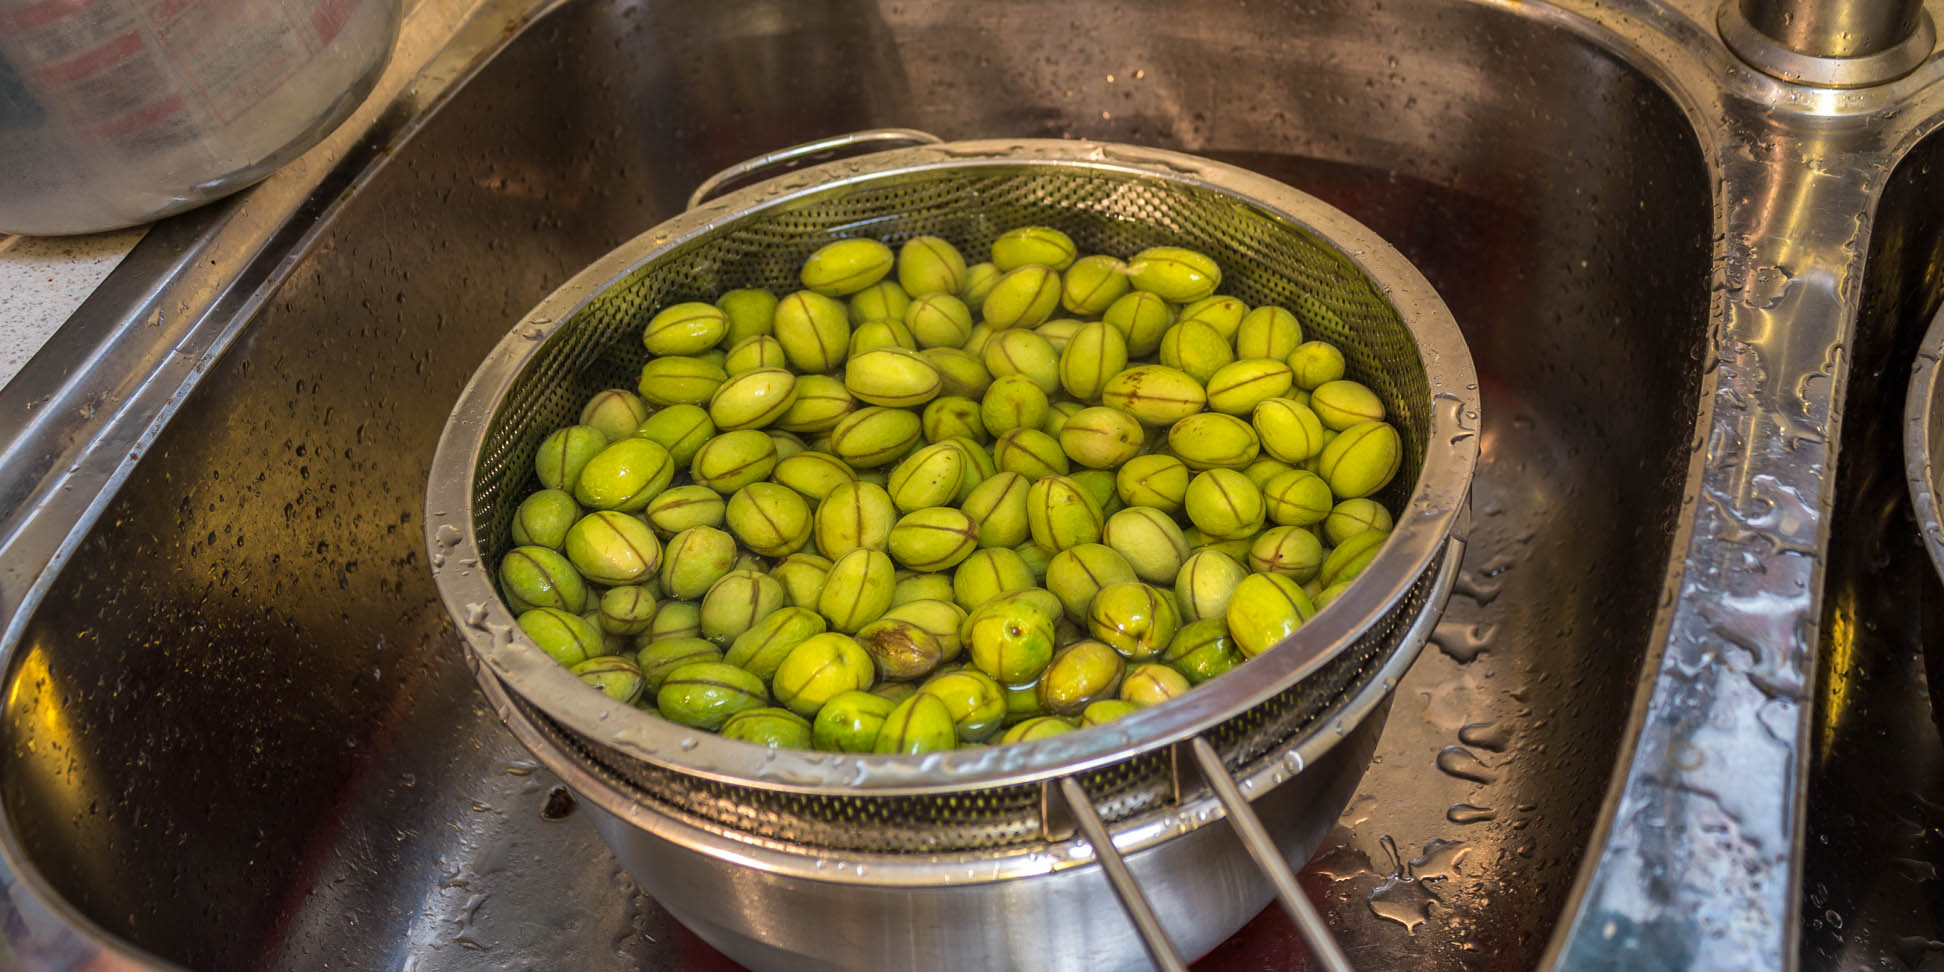 Olives being rinsed